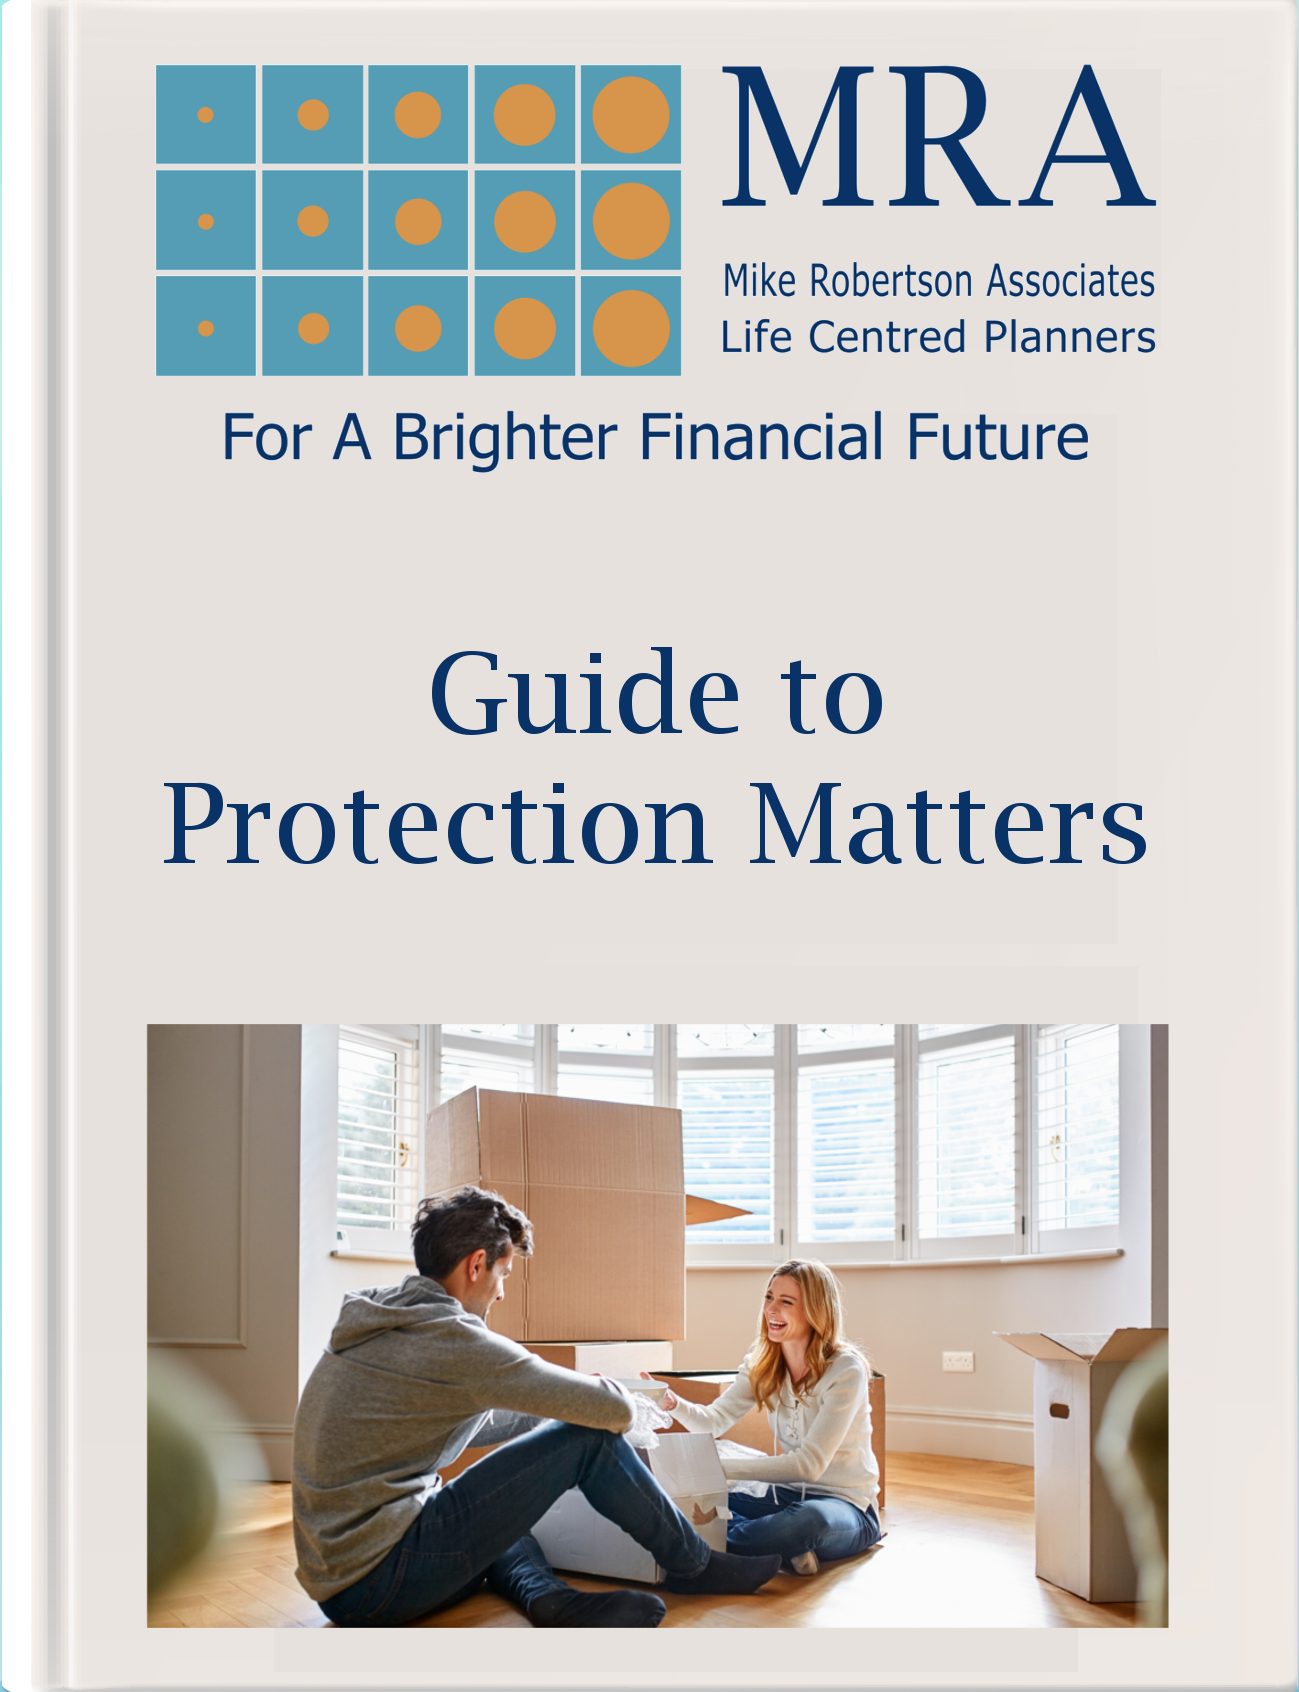 Guide to Protection Matters